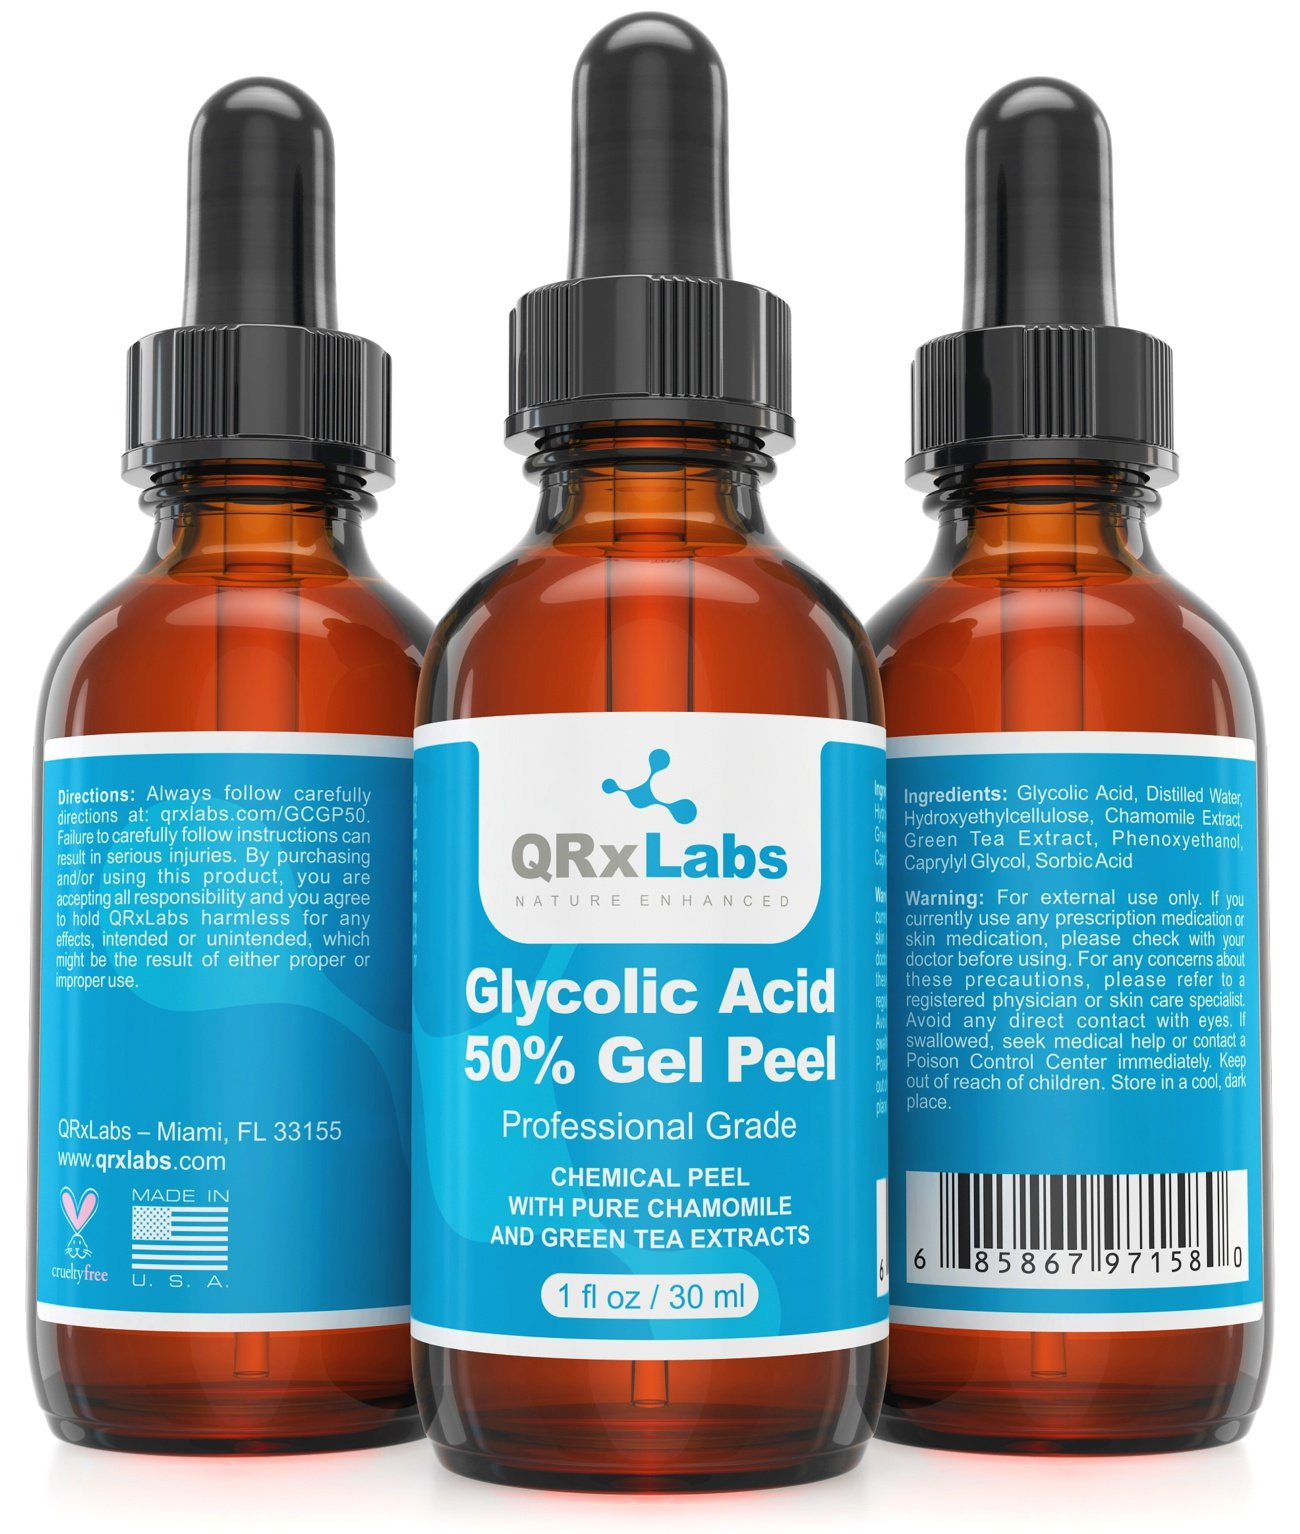 Glycolic Acid 50% Gel Peel with Chamomile and Green Tea Extracts - Professional Grade Chemical Face Peel for Acne Scars, Collagen Boost, Wrinkles, Fine Lines - Alpha Hydroxy Acid - 1 Bottle of 1 fl oz by QRxLabs (Image #1)